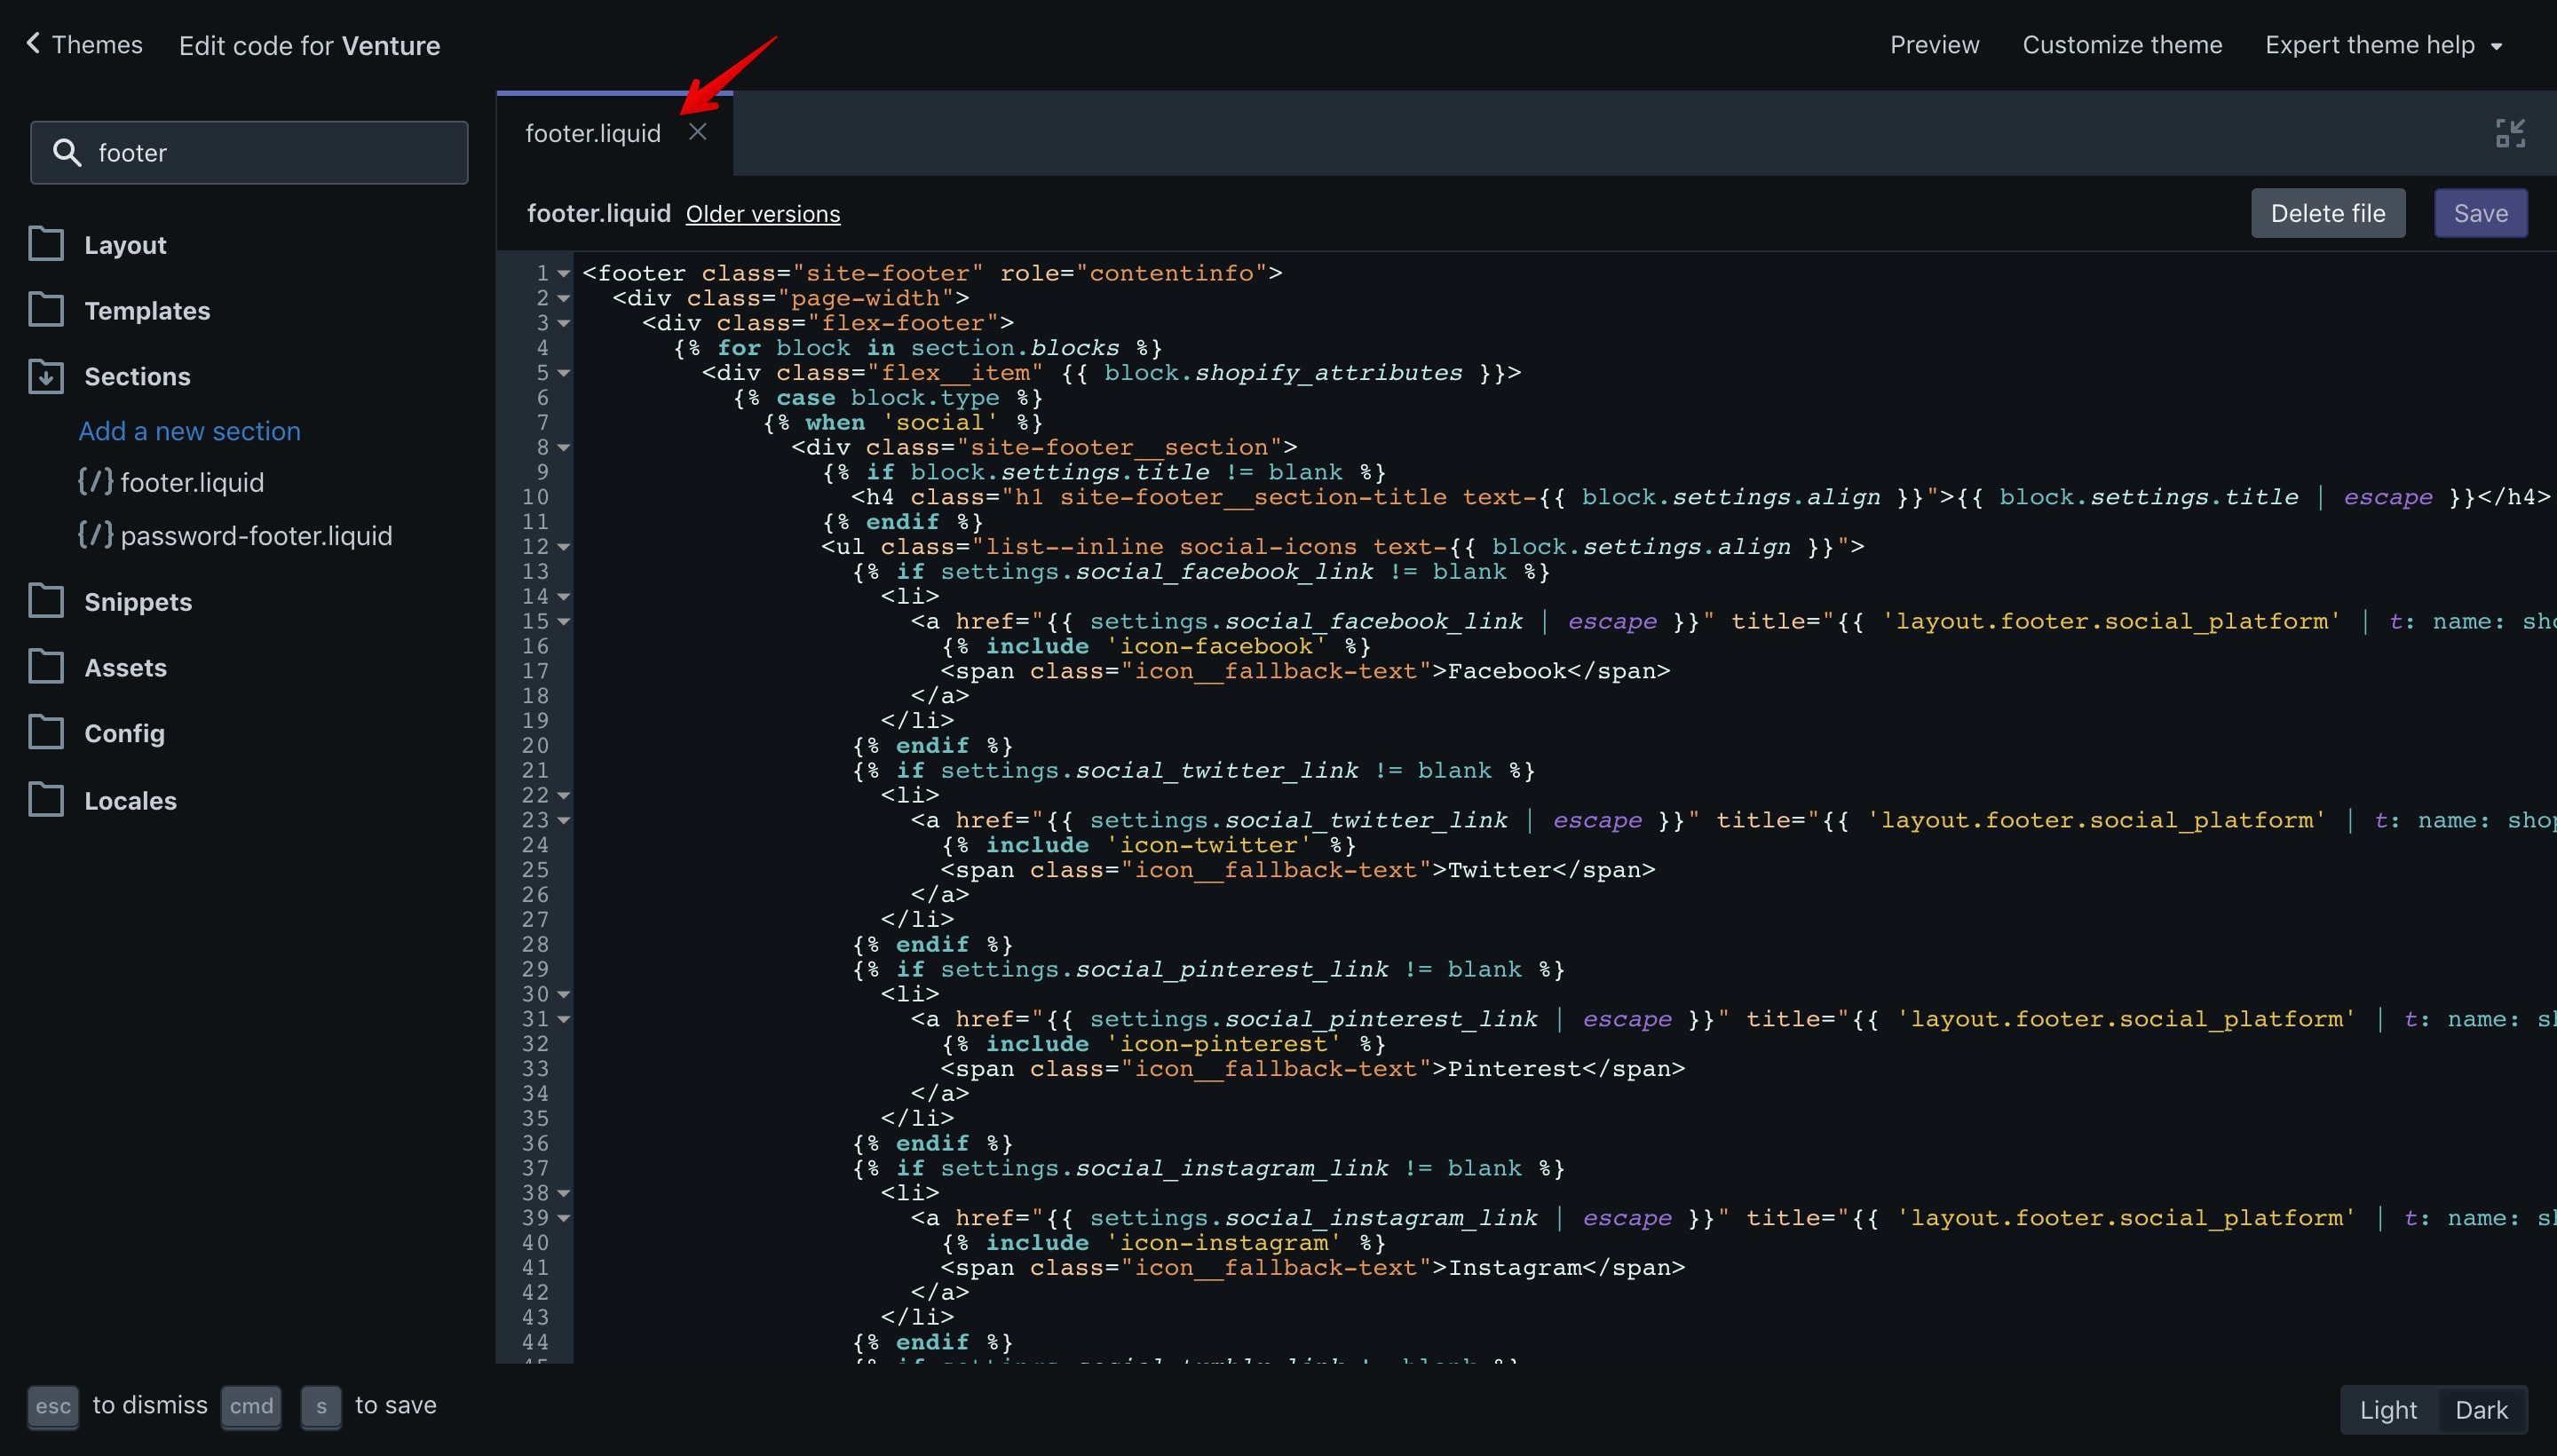 """Venture theme """"footer.liquid"""" file opened in the code editor."""